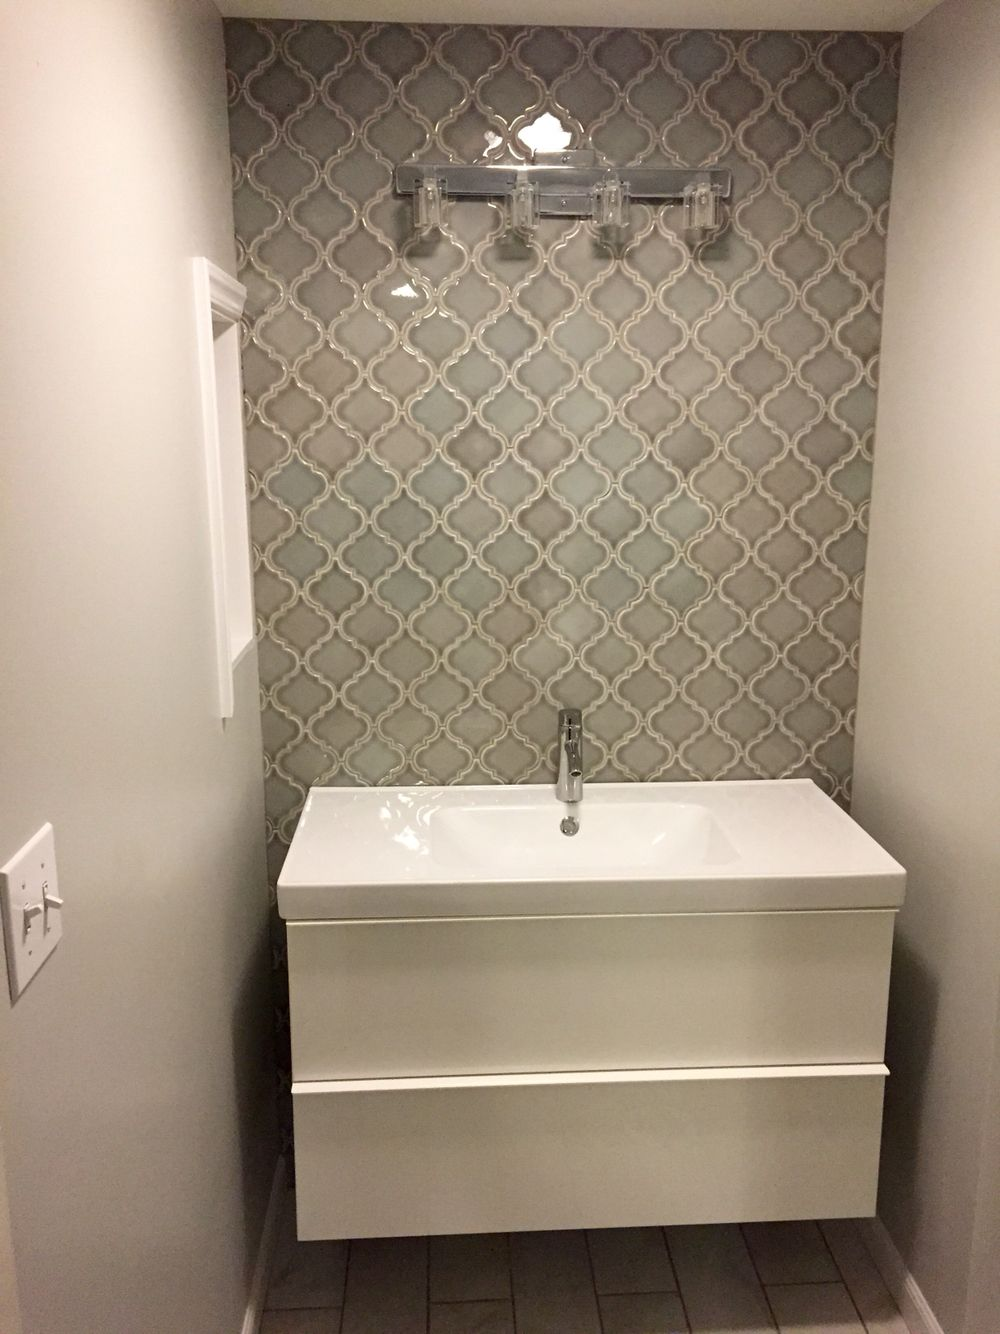 Home Depot Dove Gray Arabesque Tile Bathroom Wall Bathroom Tiles In 2019 Home Depot